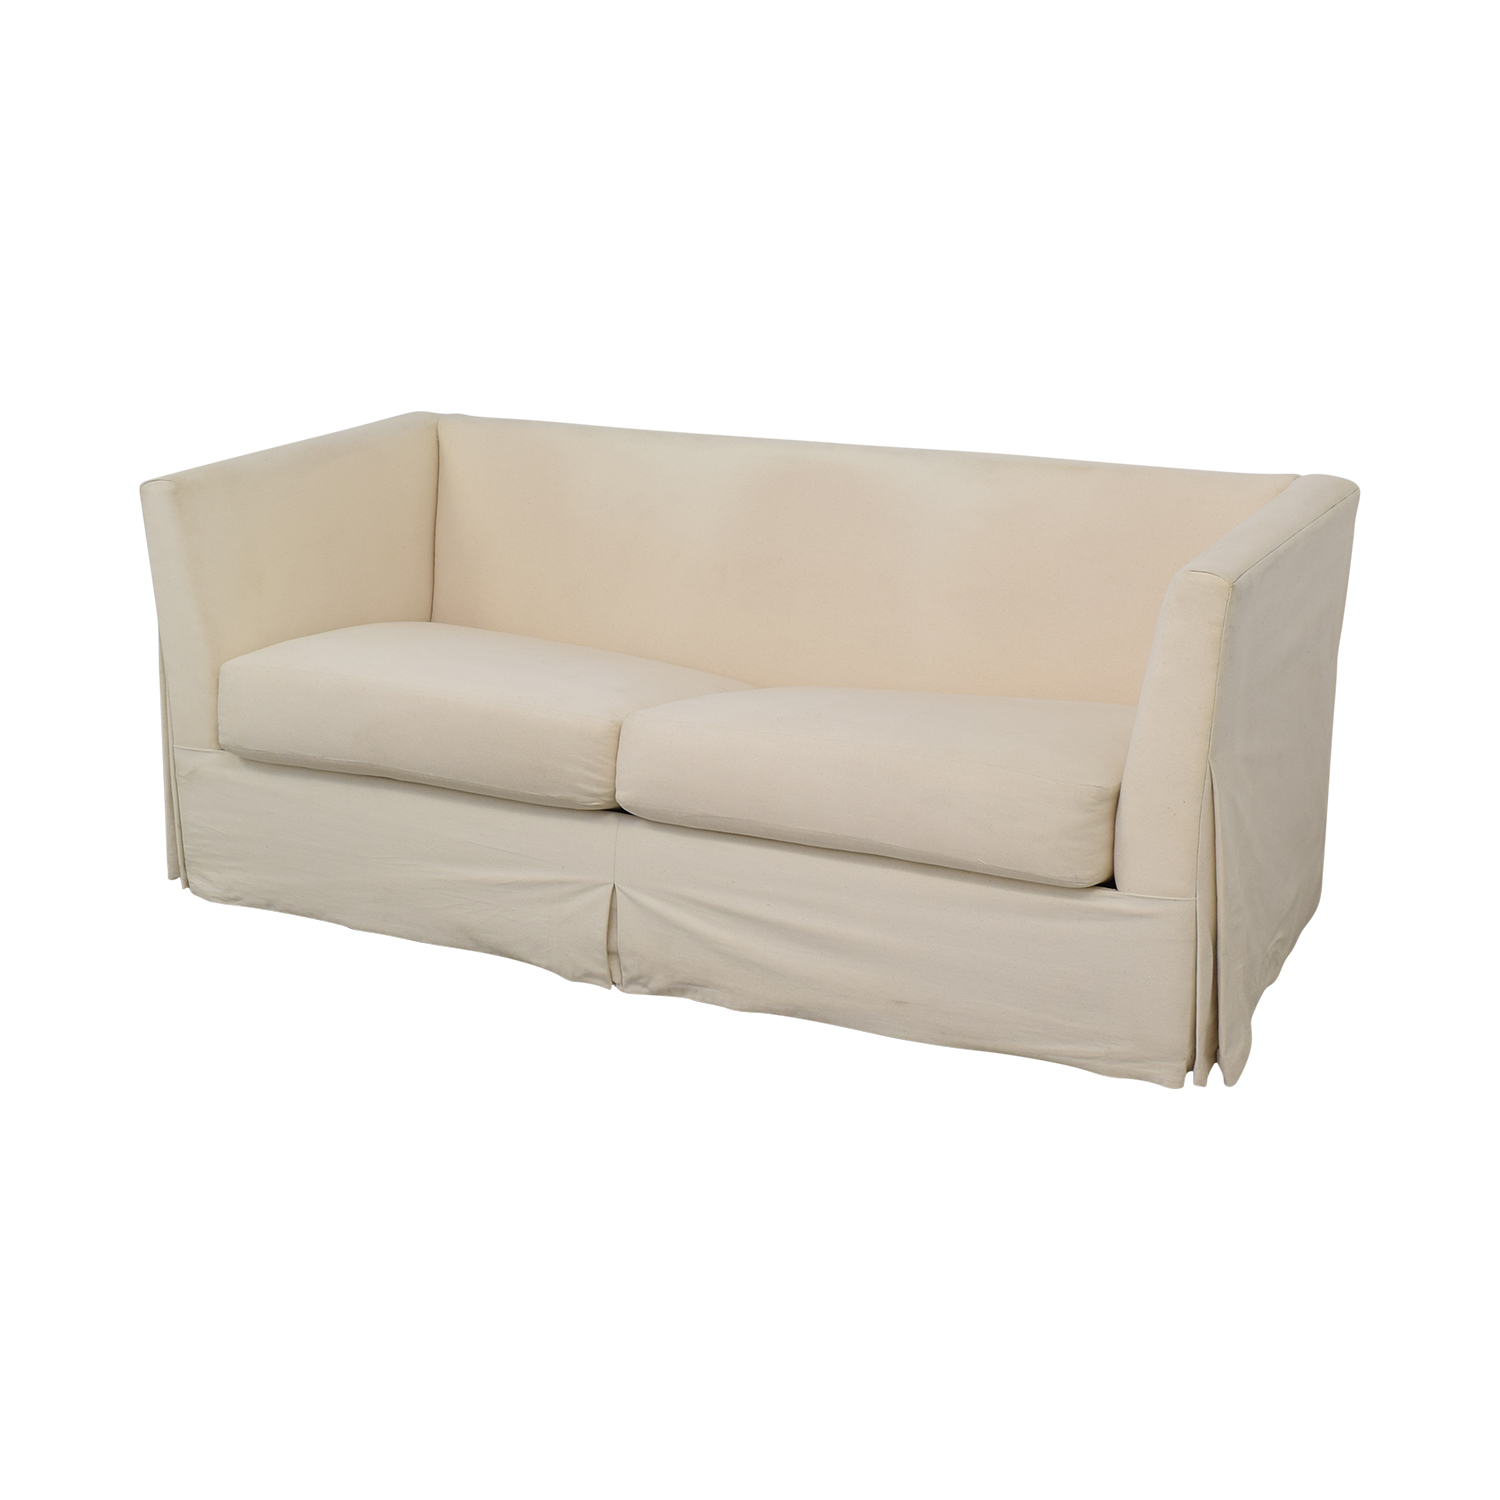 Century Furniture Century Furniture Palm Beach Queen Sleeper price